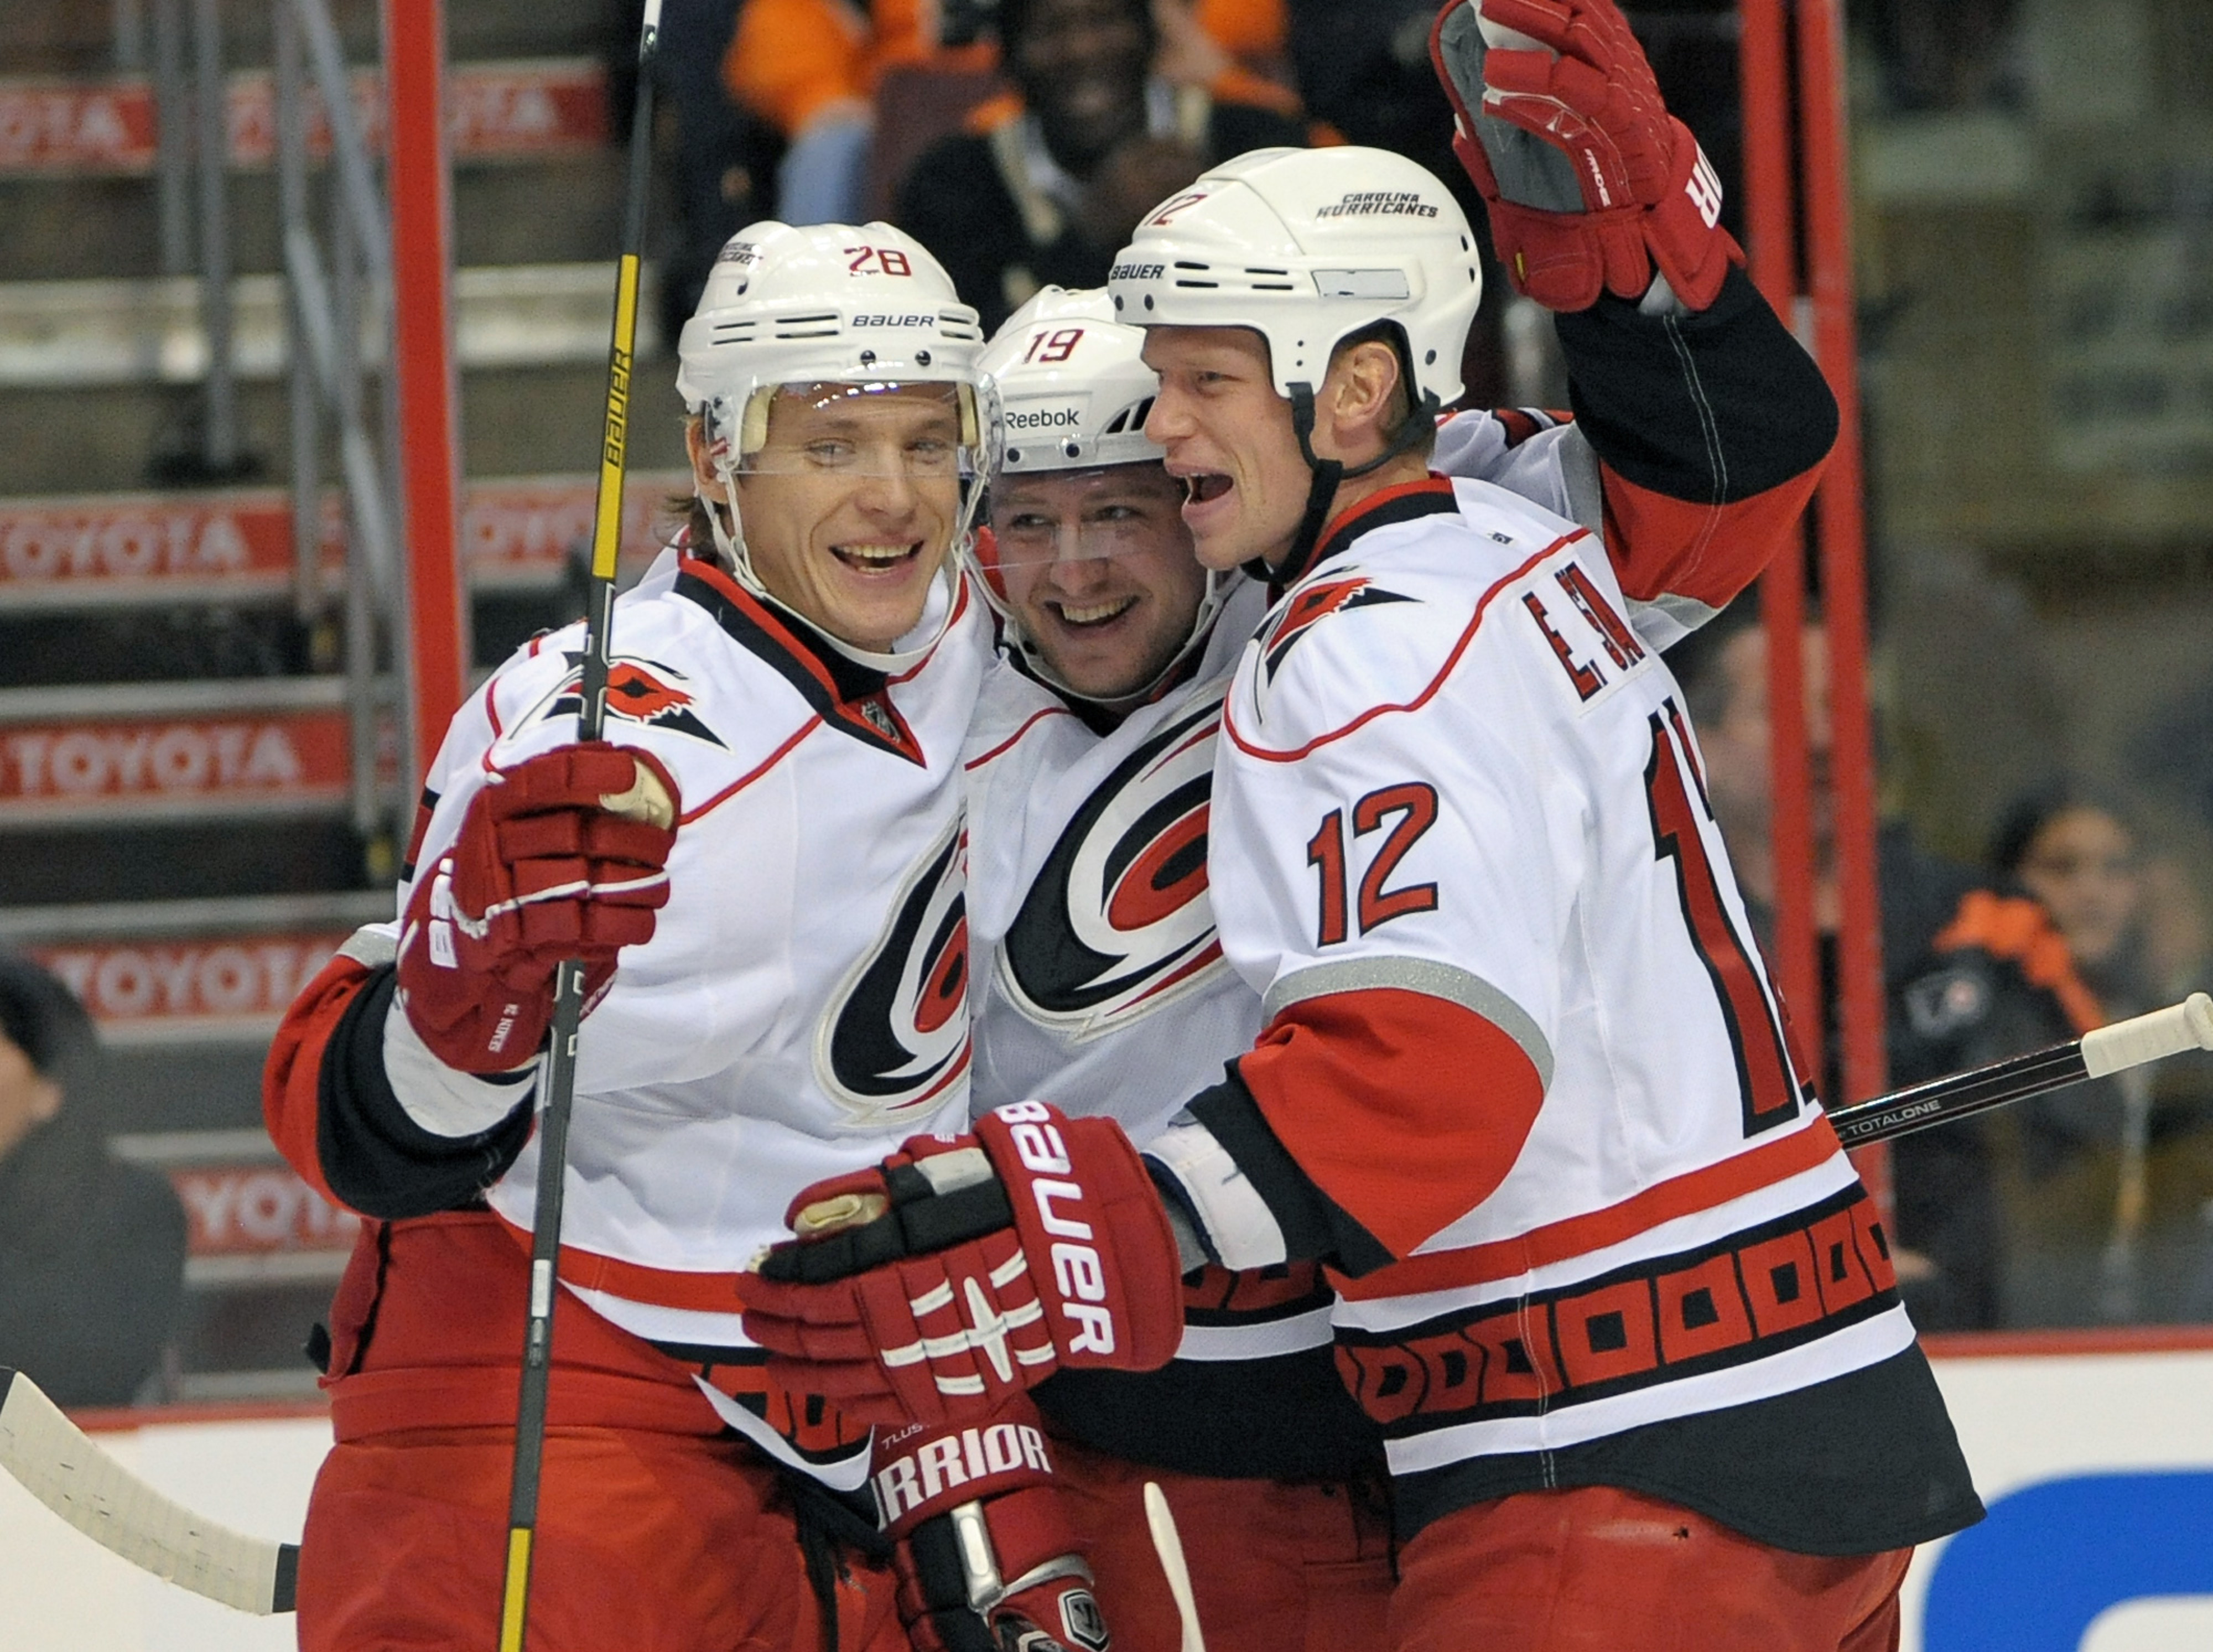 The Hurricanes top line of Semin, Tlusty and EStaal have been hugging a lot this week as they led the team's push to the top of the Southeast standings.